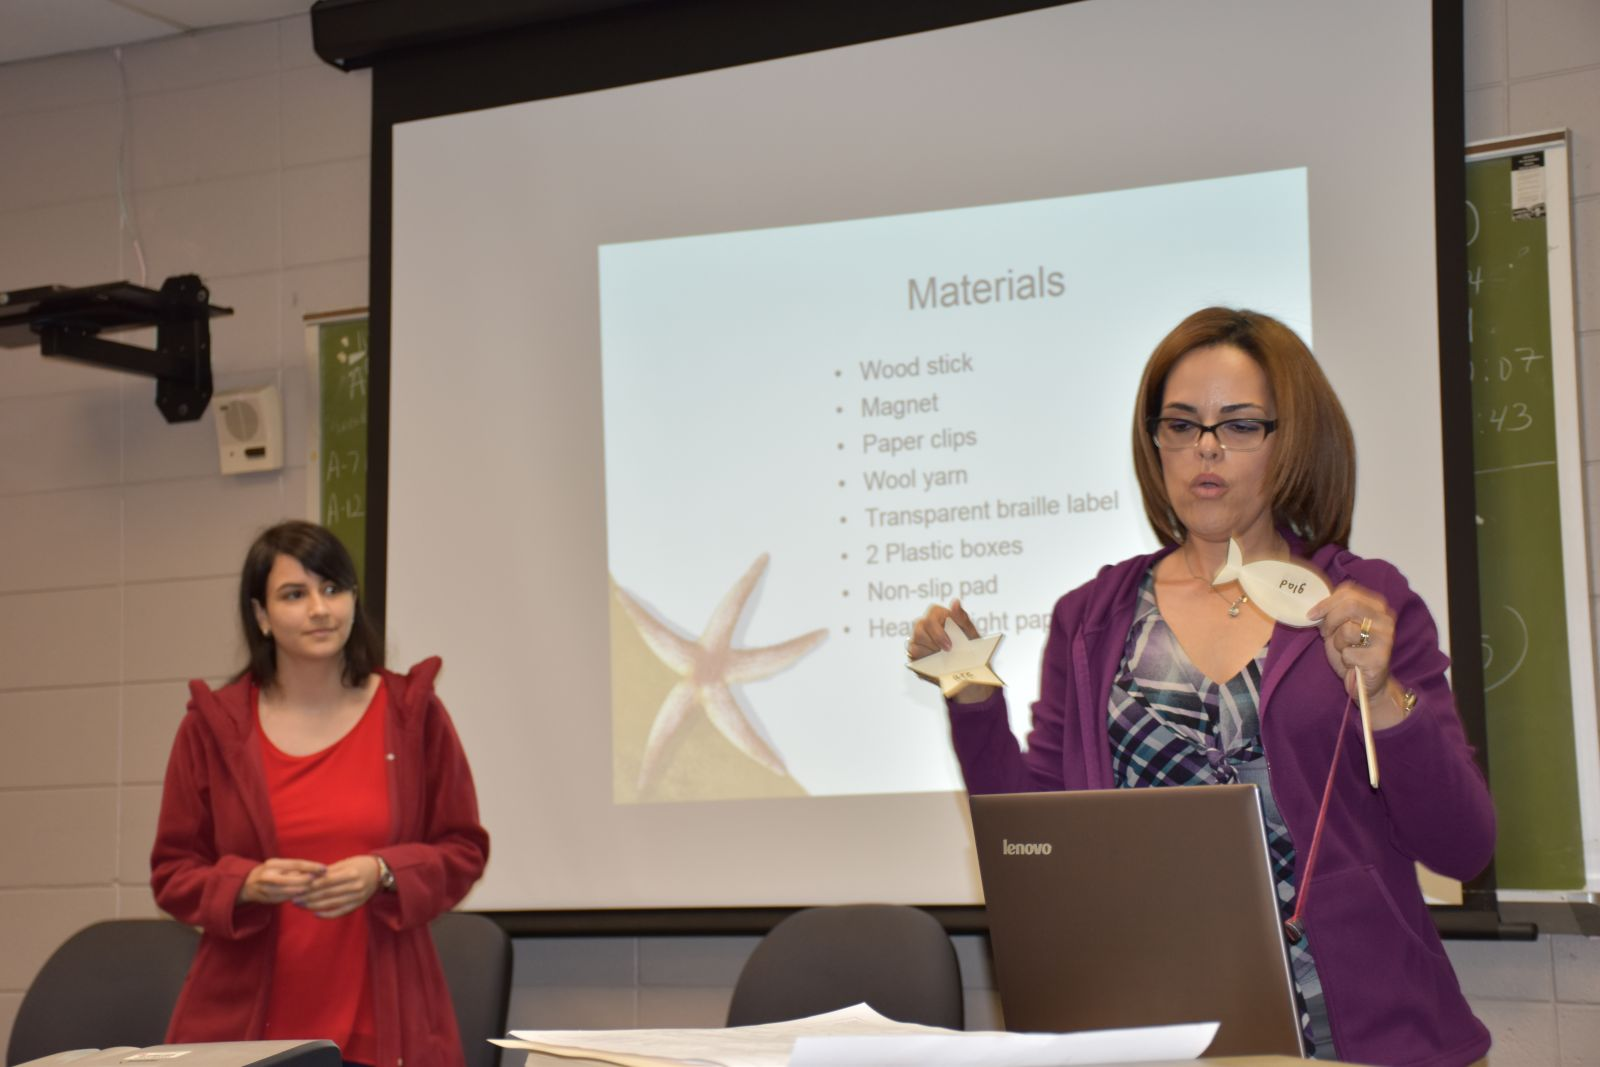 Two women presenting on a game project using a PowerPoint and tactile objects.